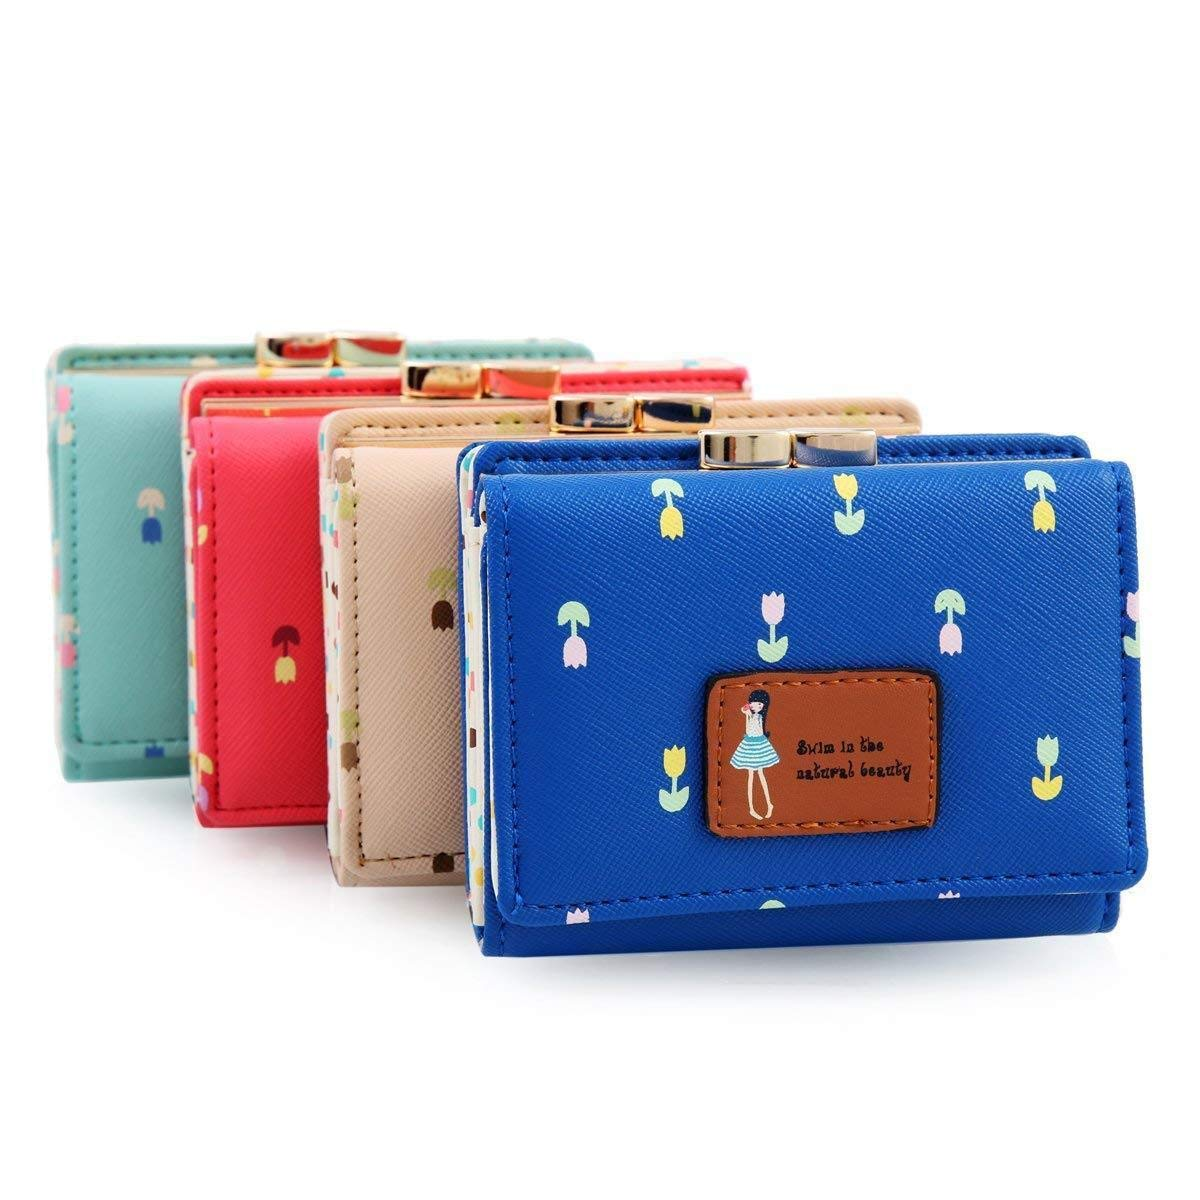 Home   Clothing and Accessories   Women   Handbags   MOCA s Cute (Lil  Tulip s) Portable Short Handy Womens Wallet Small Clutch Wallet Hand ... e7e370338b4e7